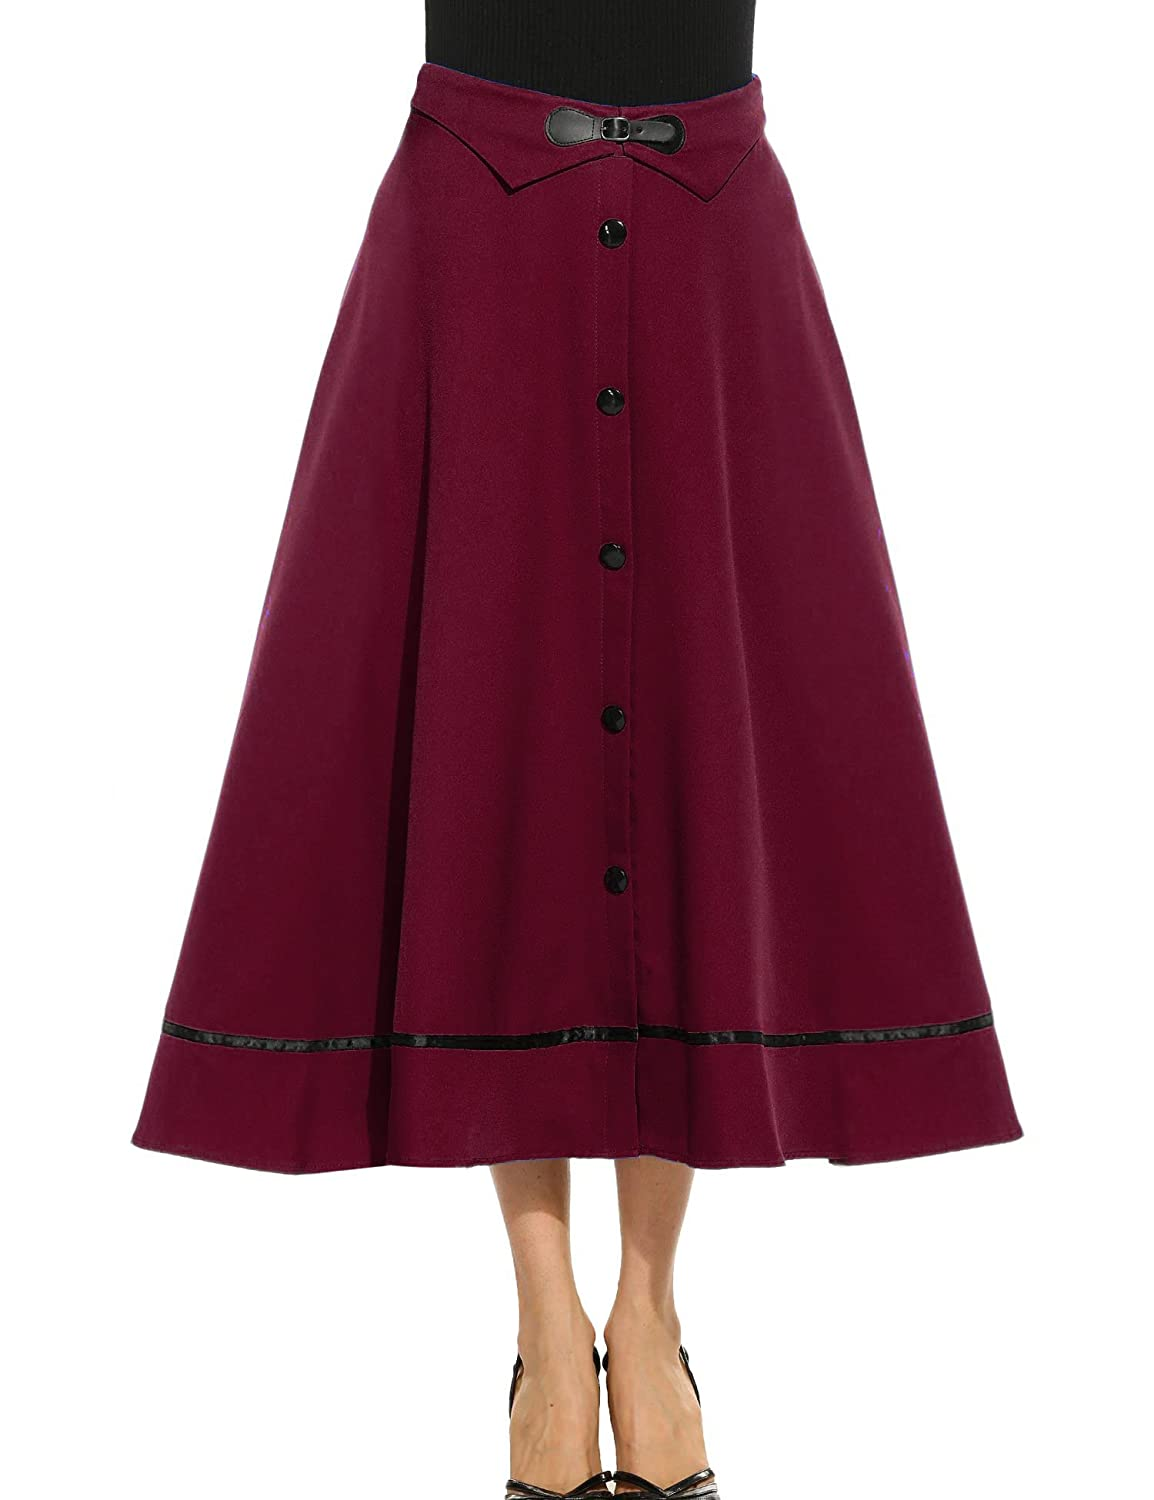 1920s Skirt History ANGVNS Womens Vintage High Waist Button Down Pleated Swing Skirt $18.99 AT vintagedancer.com